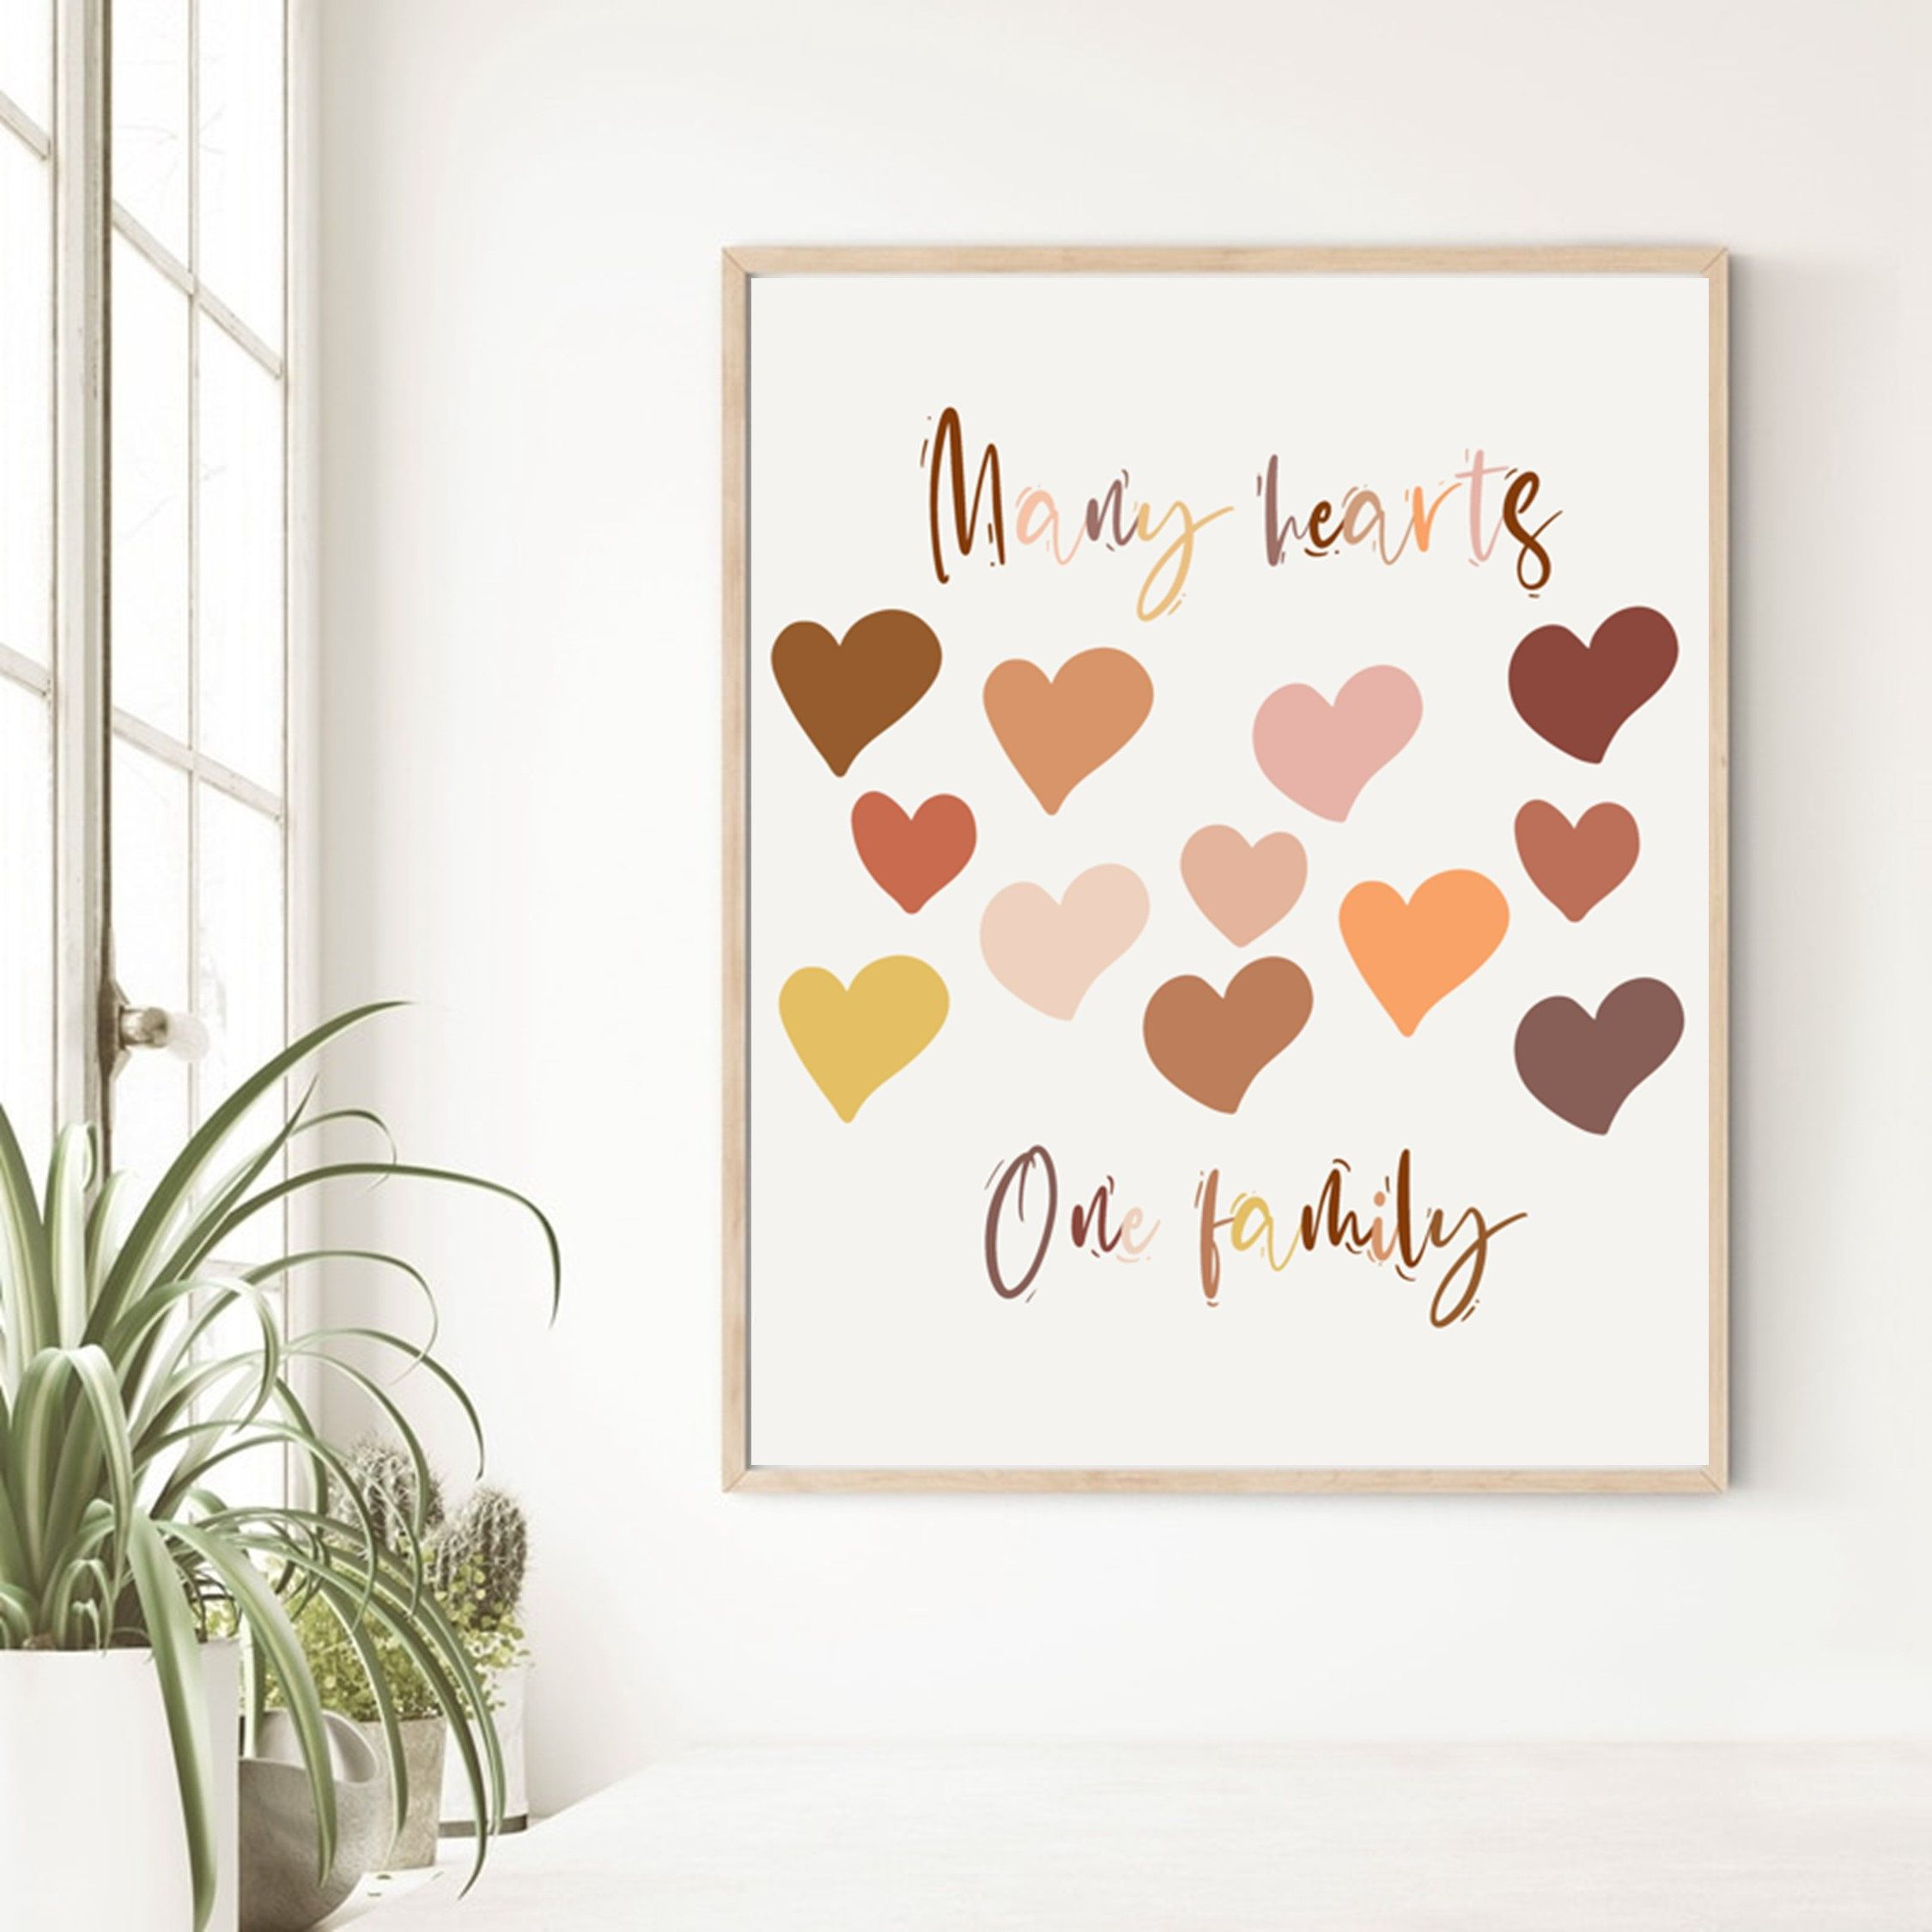 Hearts Printable Wall Art Skin Tones Print Racial Inclusion Etsy Printable Wall Art Diversity Poster Standard Picture Frame Sizes